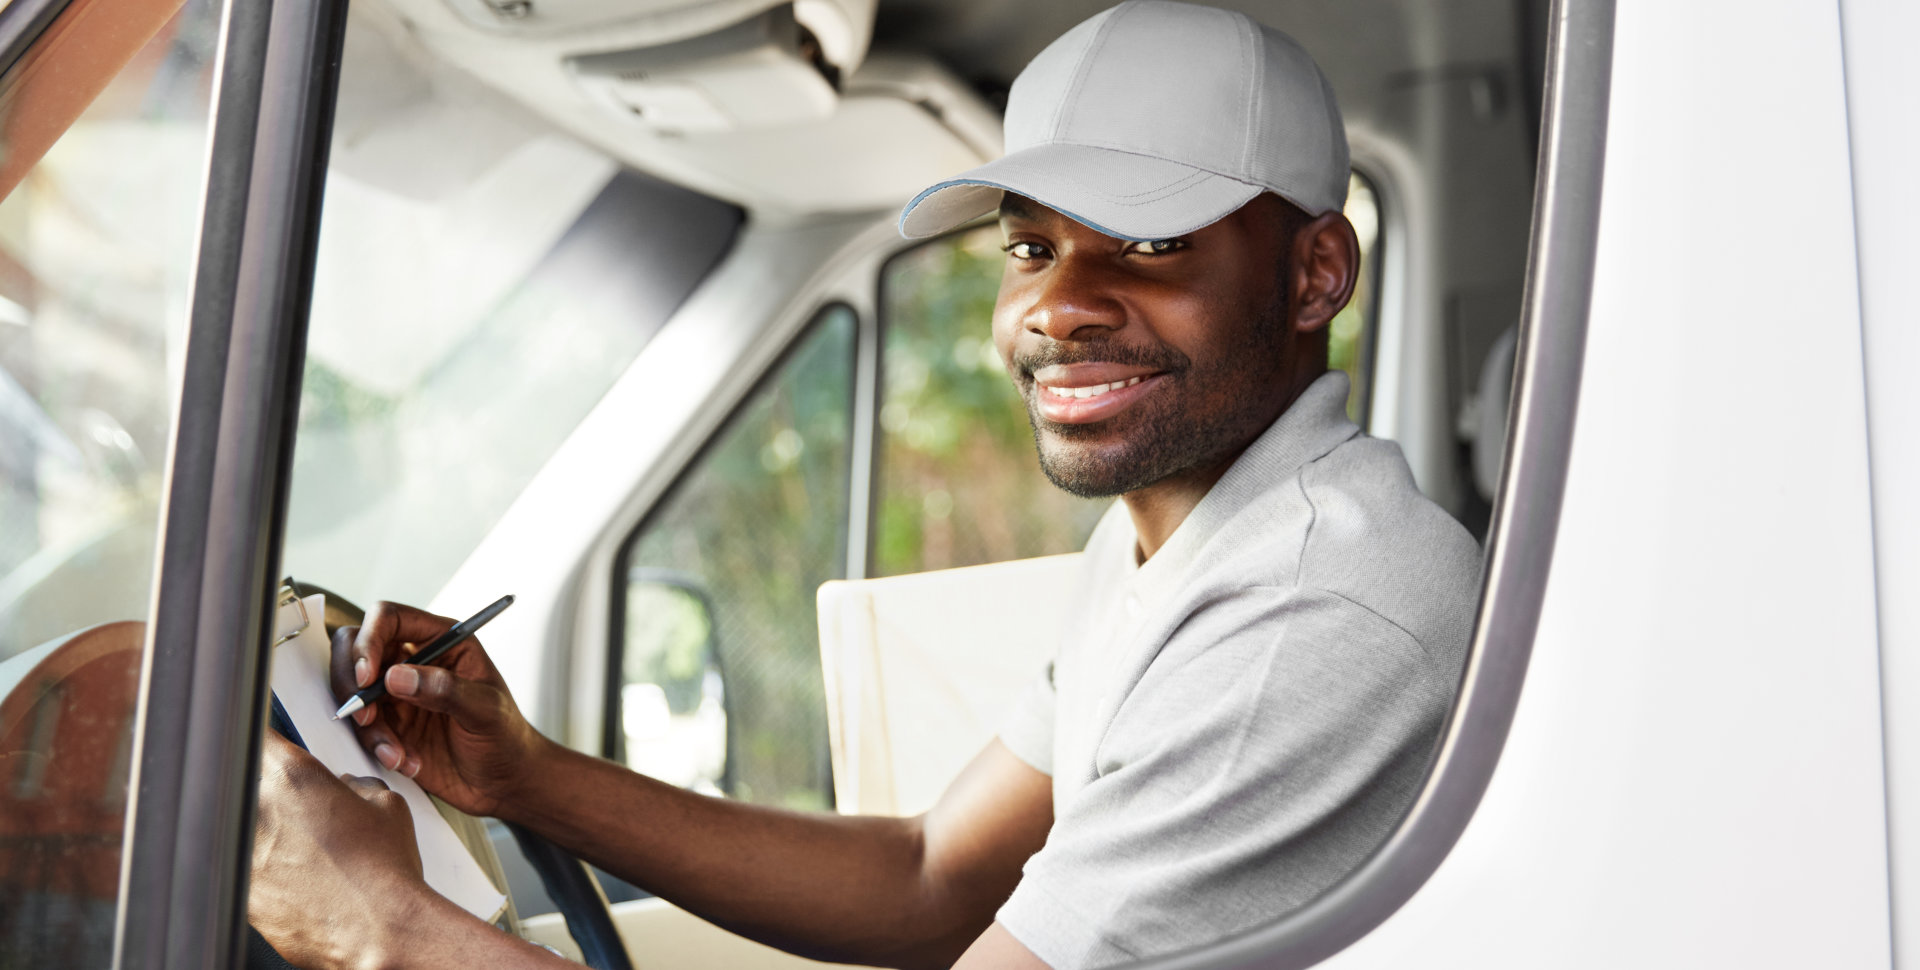 truck driver in a white shirt